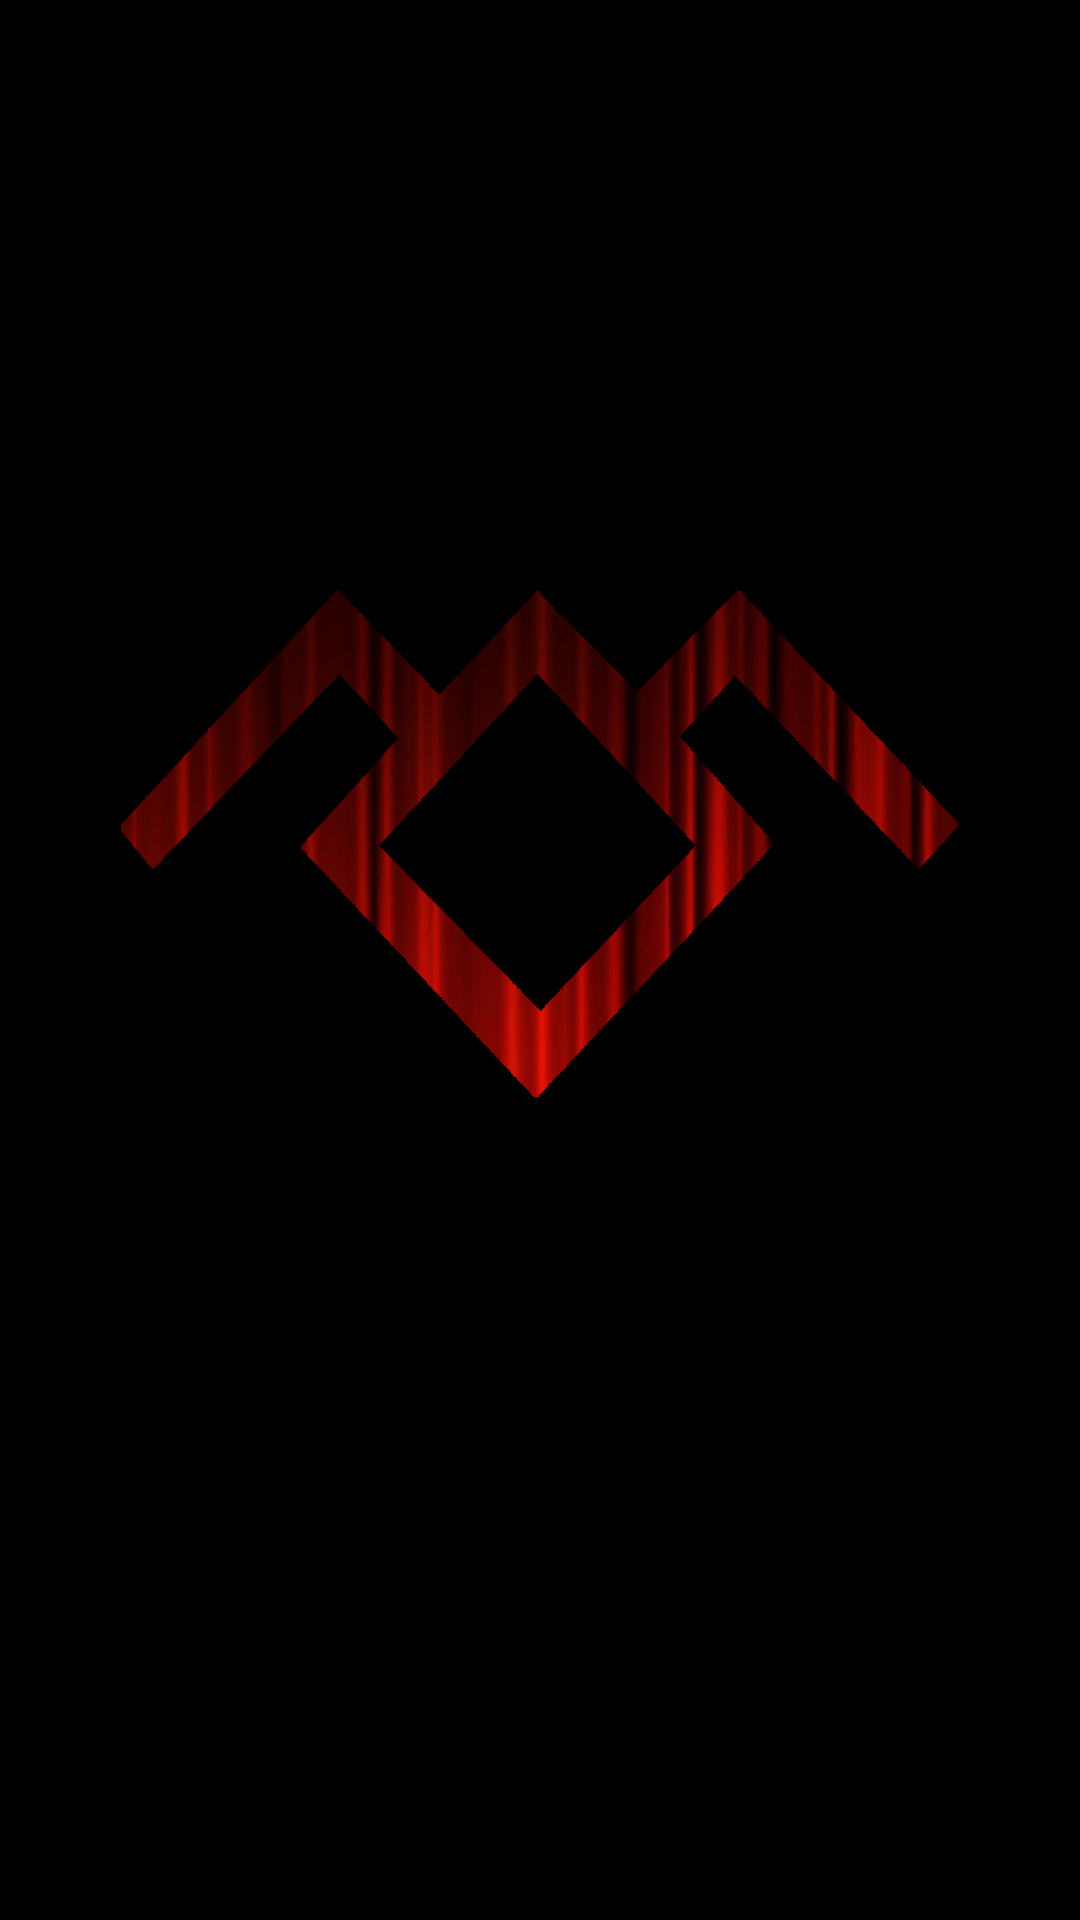 Twin Peaks 1080x1920 Need Iphone 6s Plus Wallpaper Background For Iphone6splus Follow Iphone 6s Plus 3wallpapers Backgrounds Must To Have Http Ift